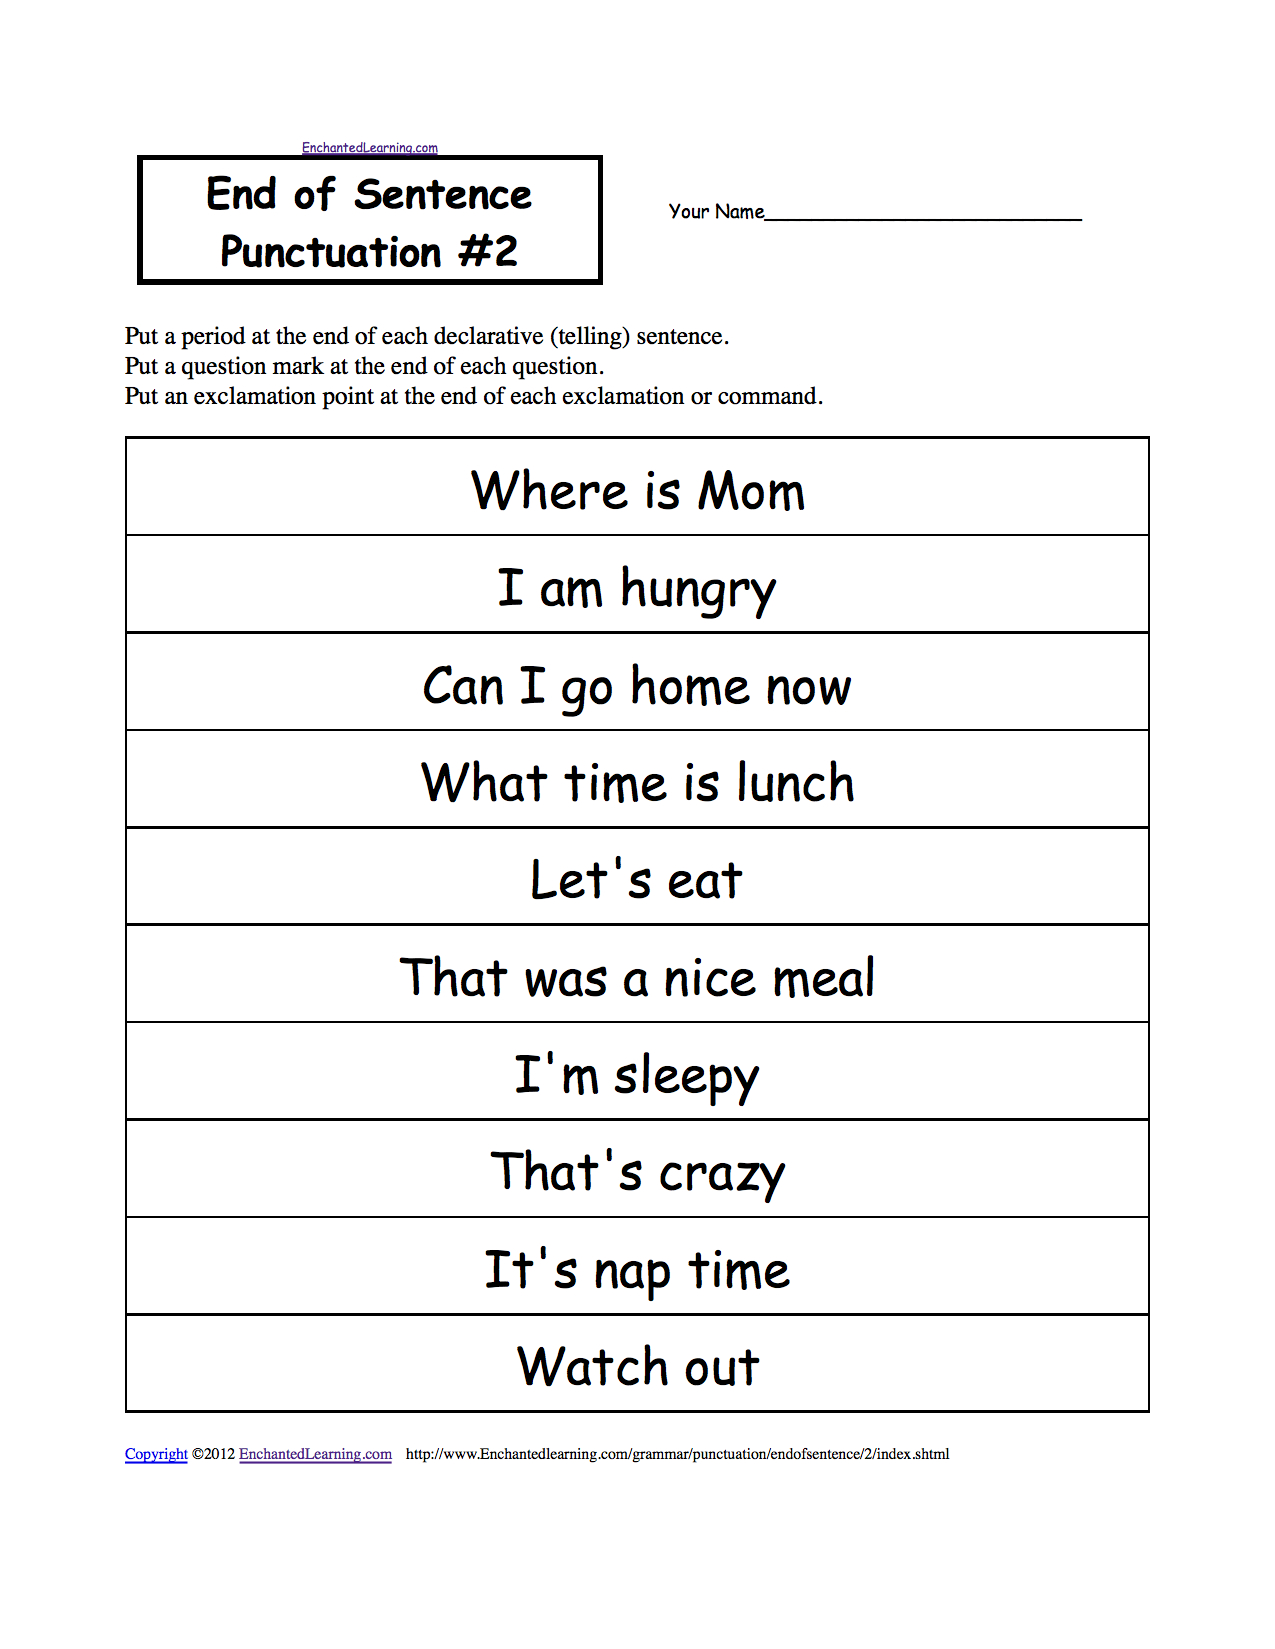 Punctuation Marks: Enchantedlearning   Free Printable Punctuation Worksheets For Middle School